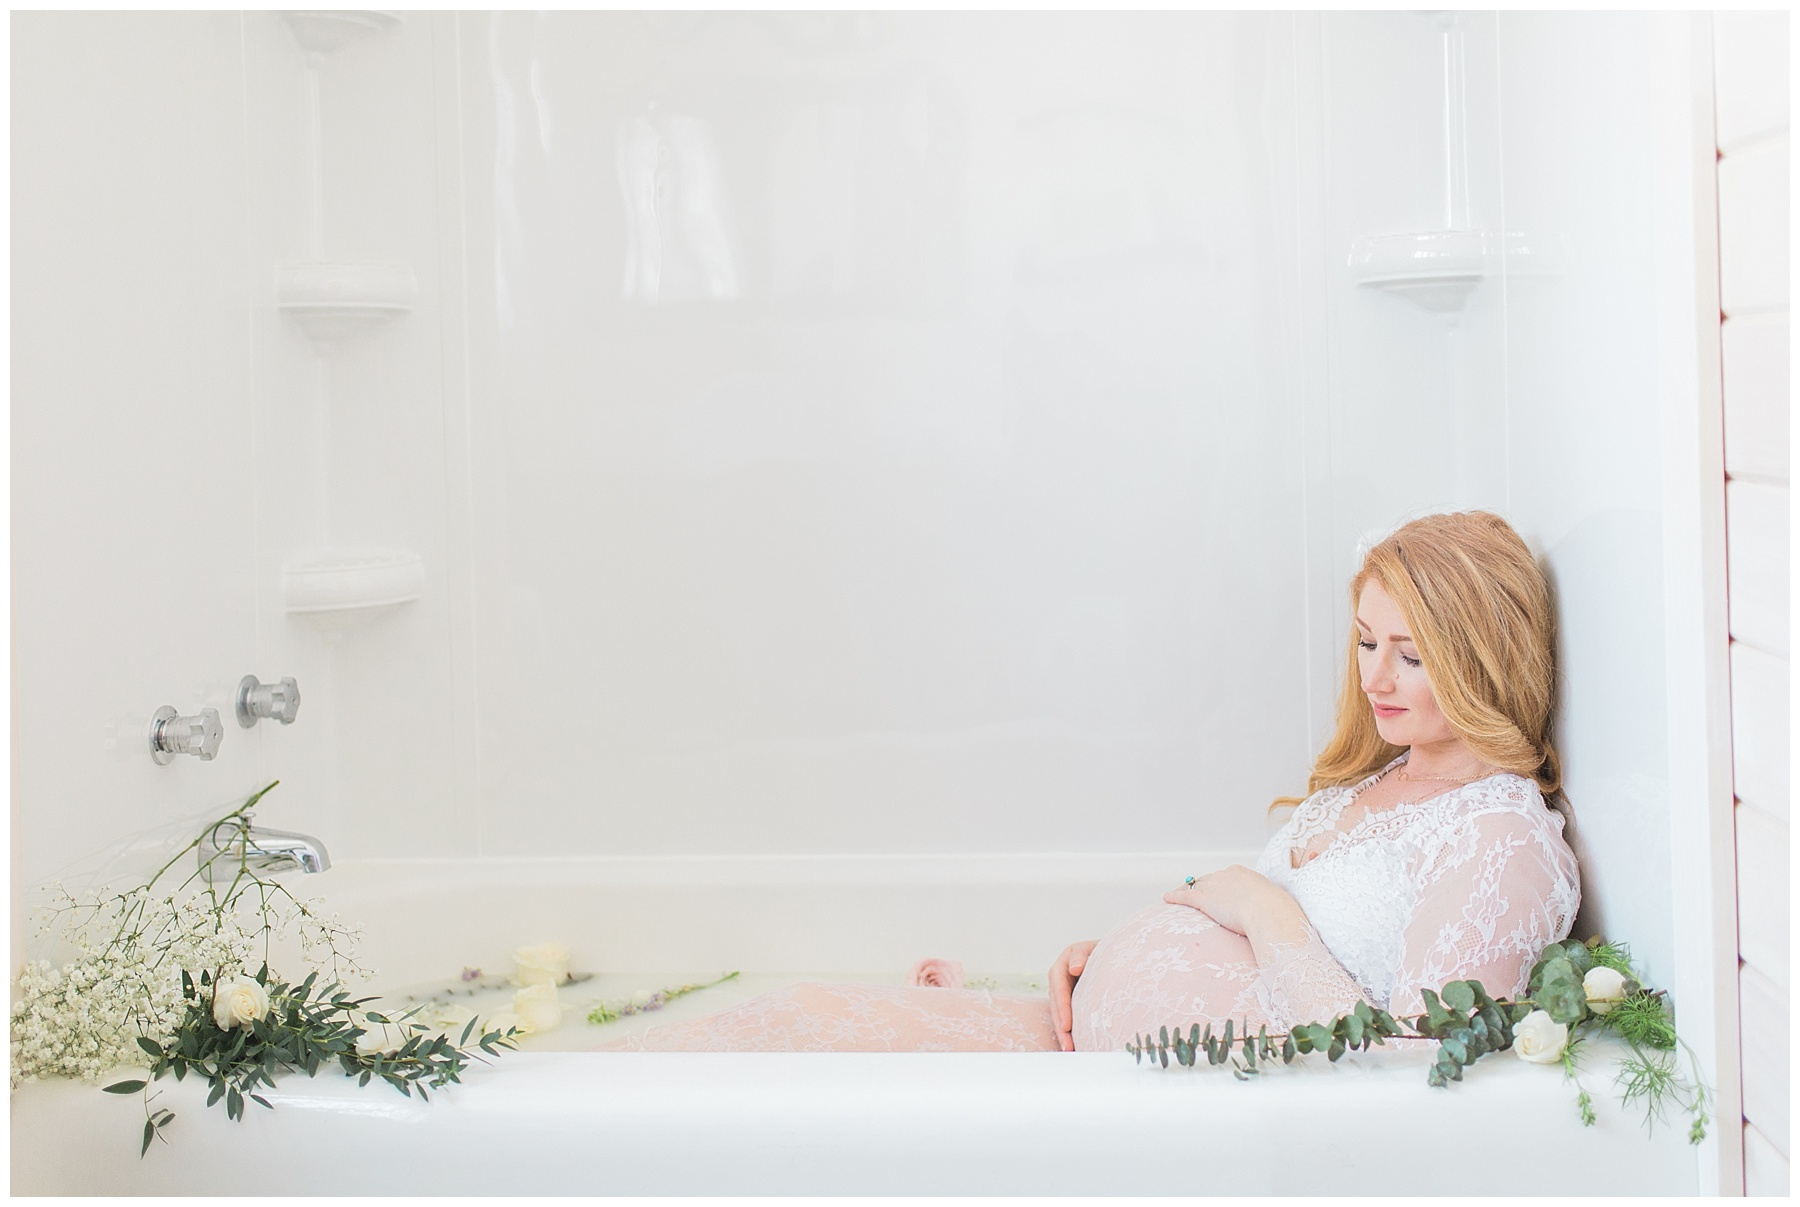 redheaded pregnant woman takes a milk bath with flowers in her bangor, maine, home in a white, see-through dress